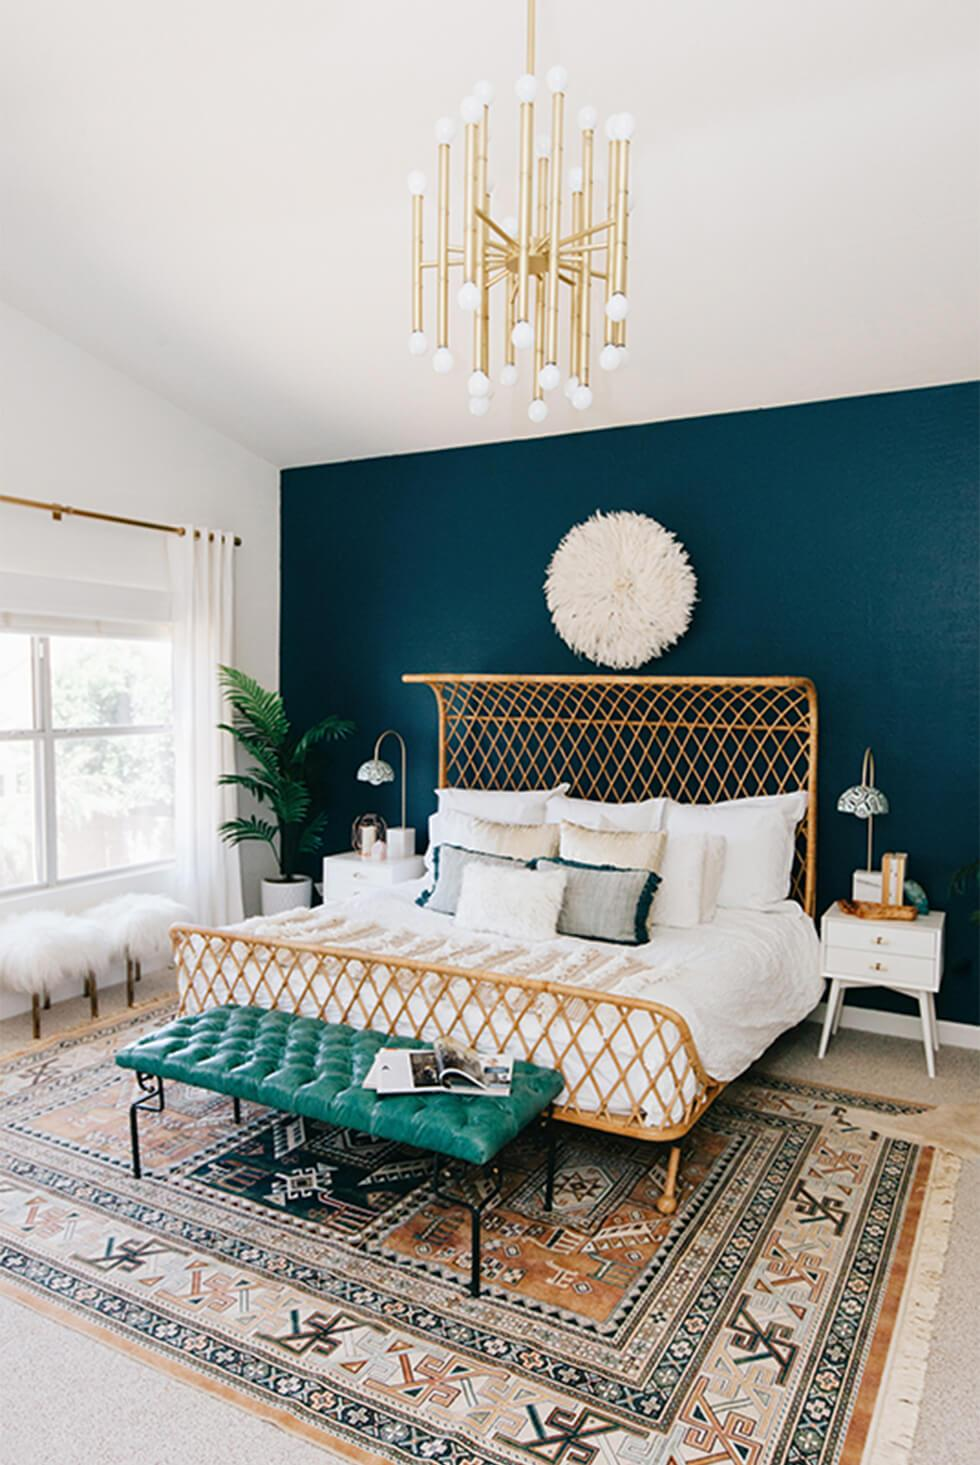 Tropical teal bedroom with a large rug, gold chandelier and statement rattan bed